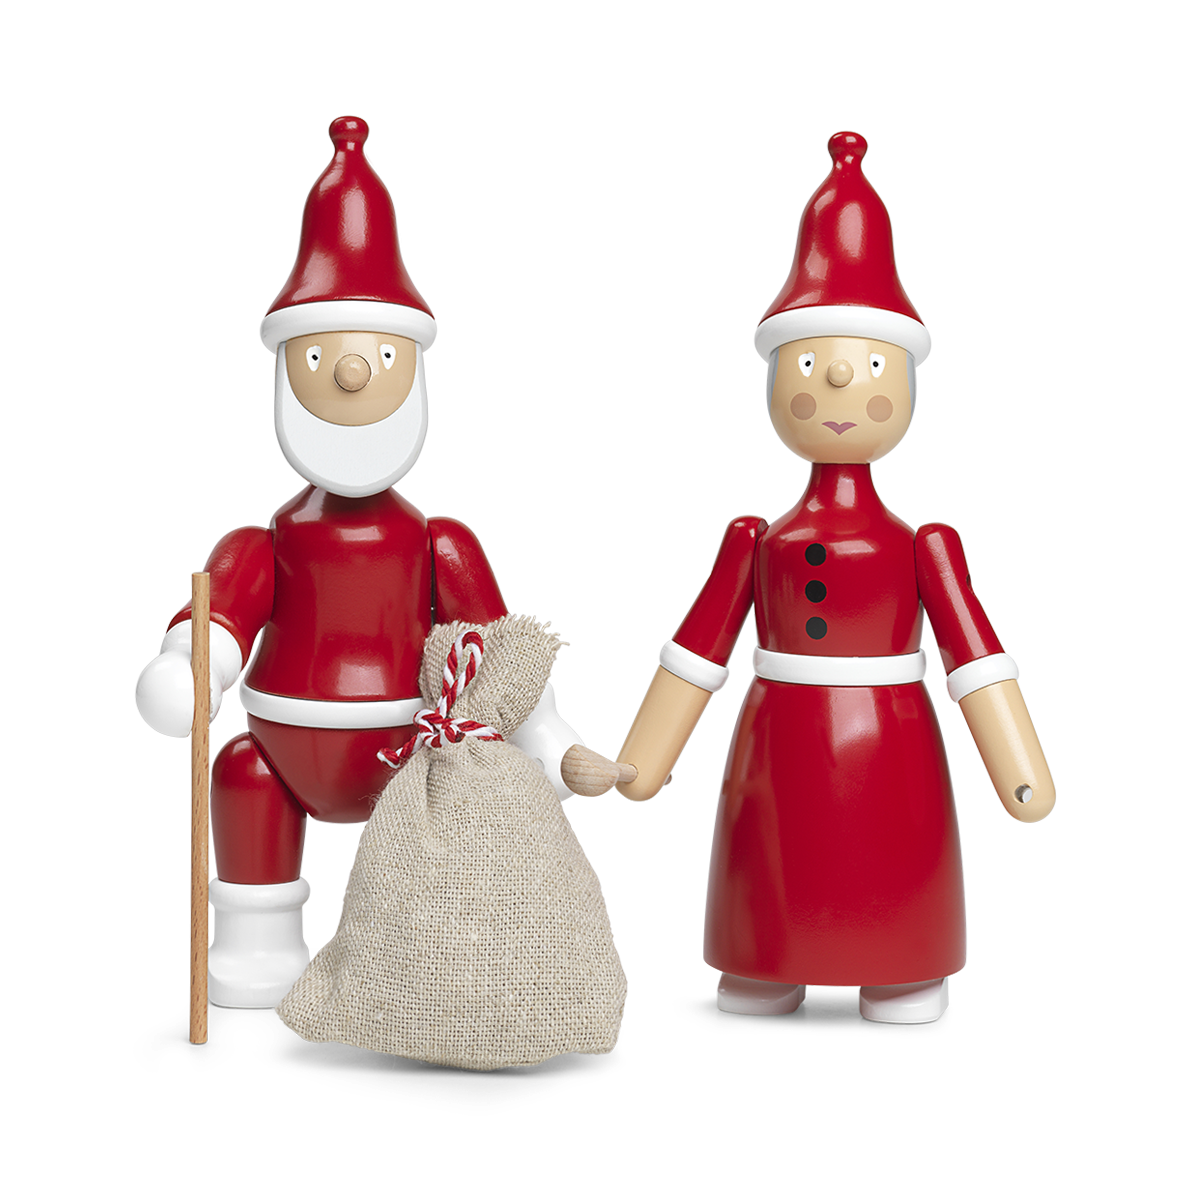 mrs claus kay bojesen exclusive christmas decorations by a danish artist. Black Bedroom Furniture Sets. Home Design Ideas